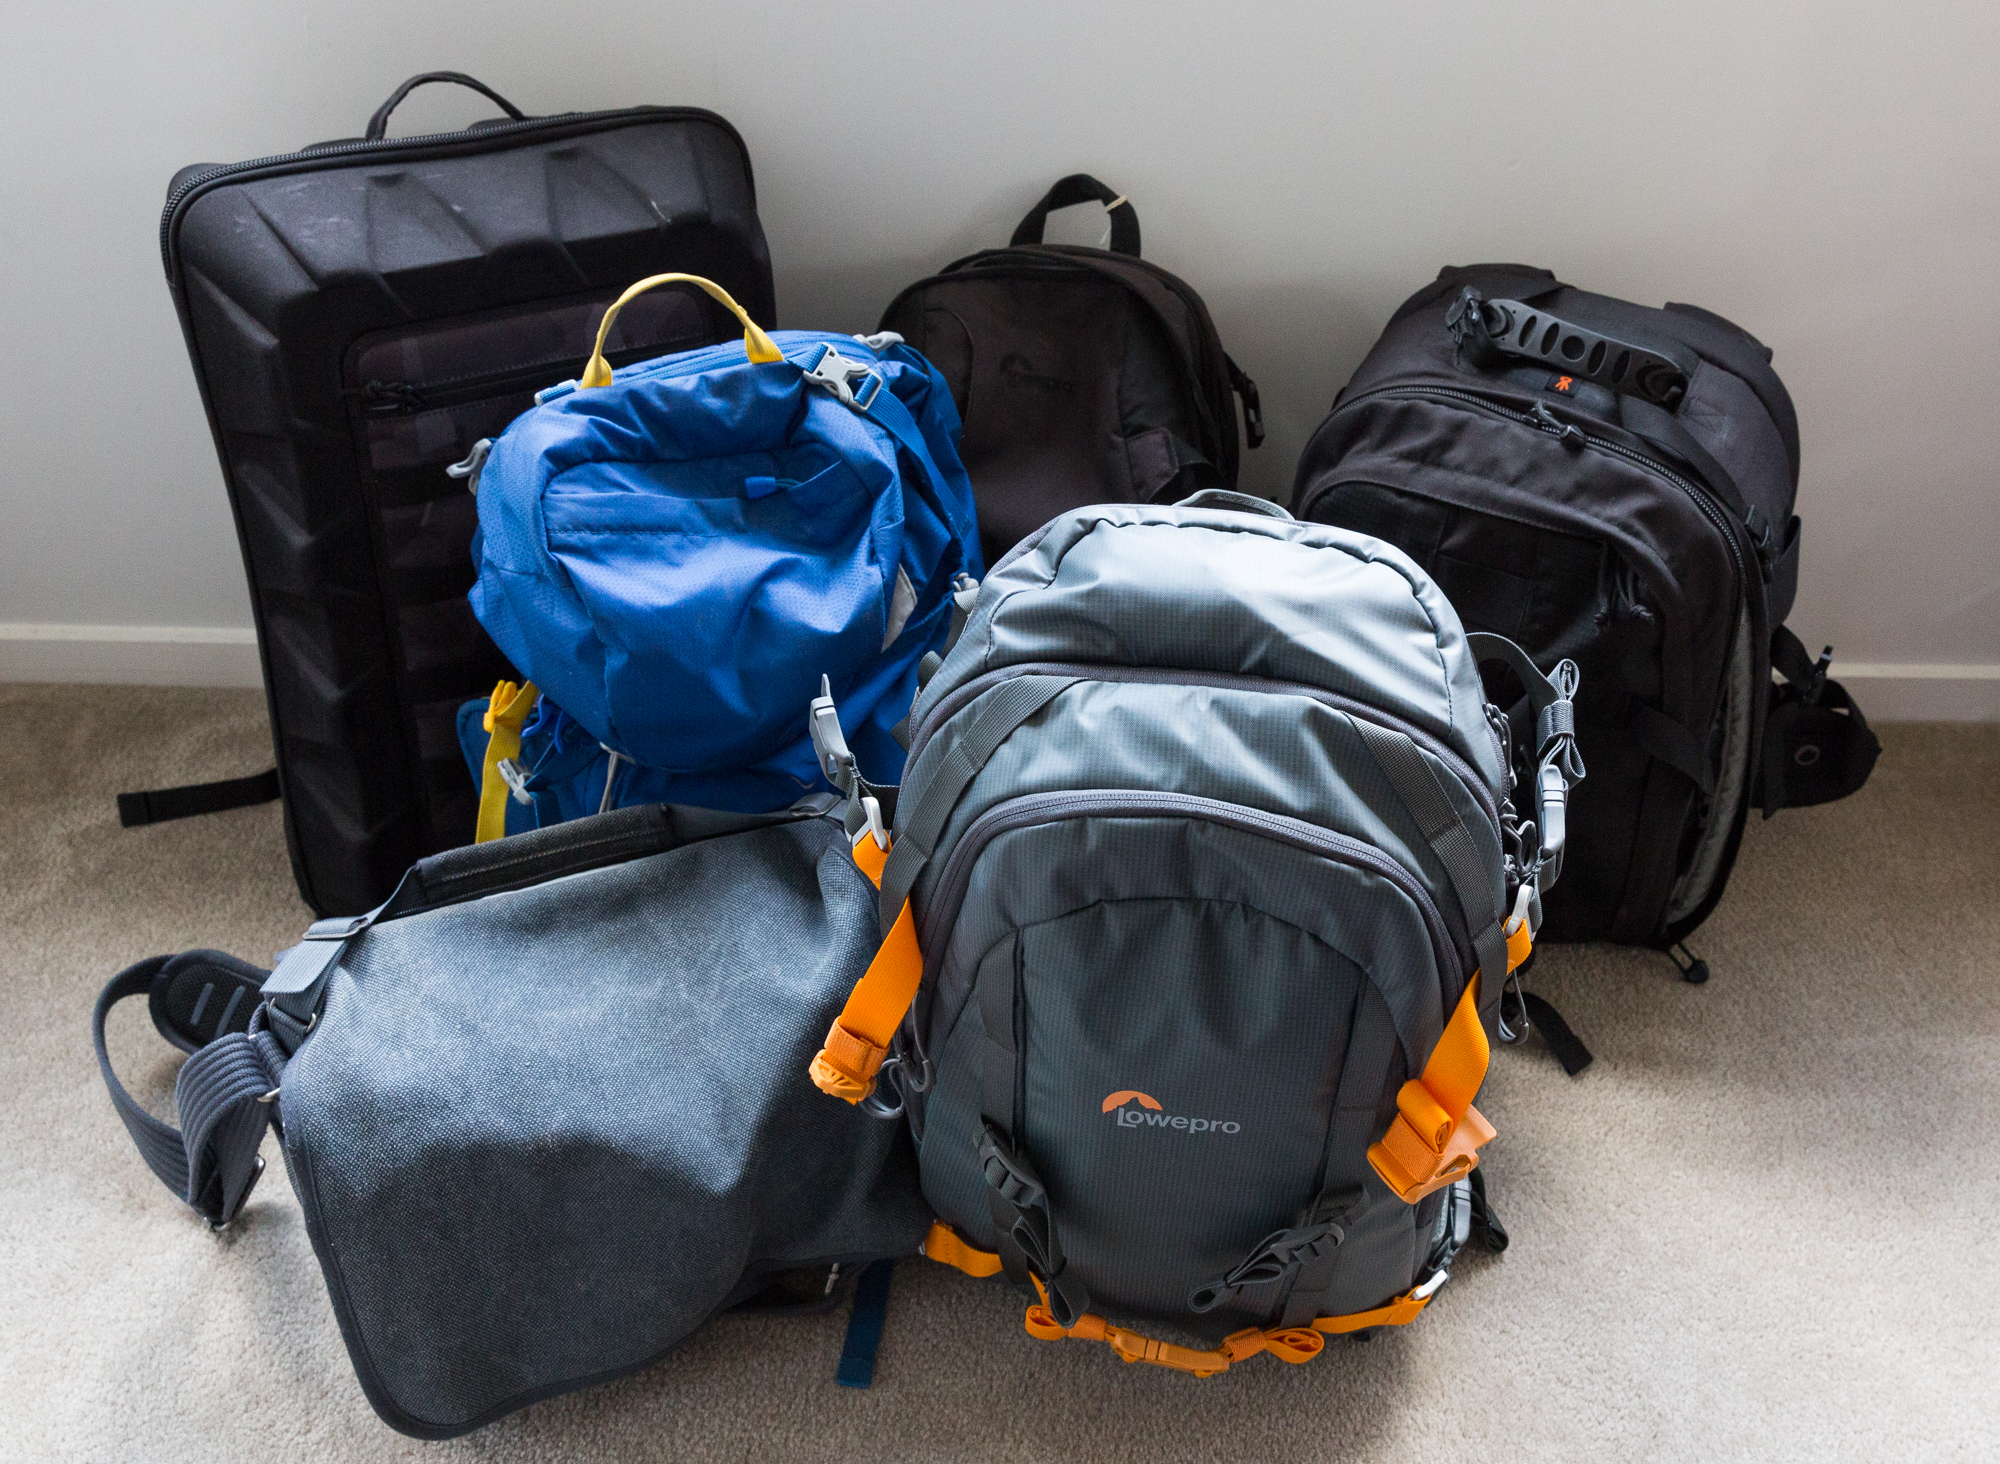 Some of but not all of the camera bags that I have used over the years.